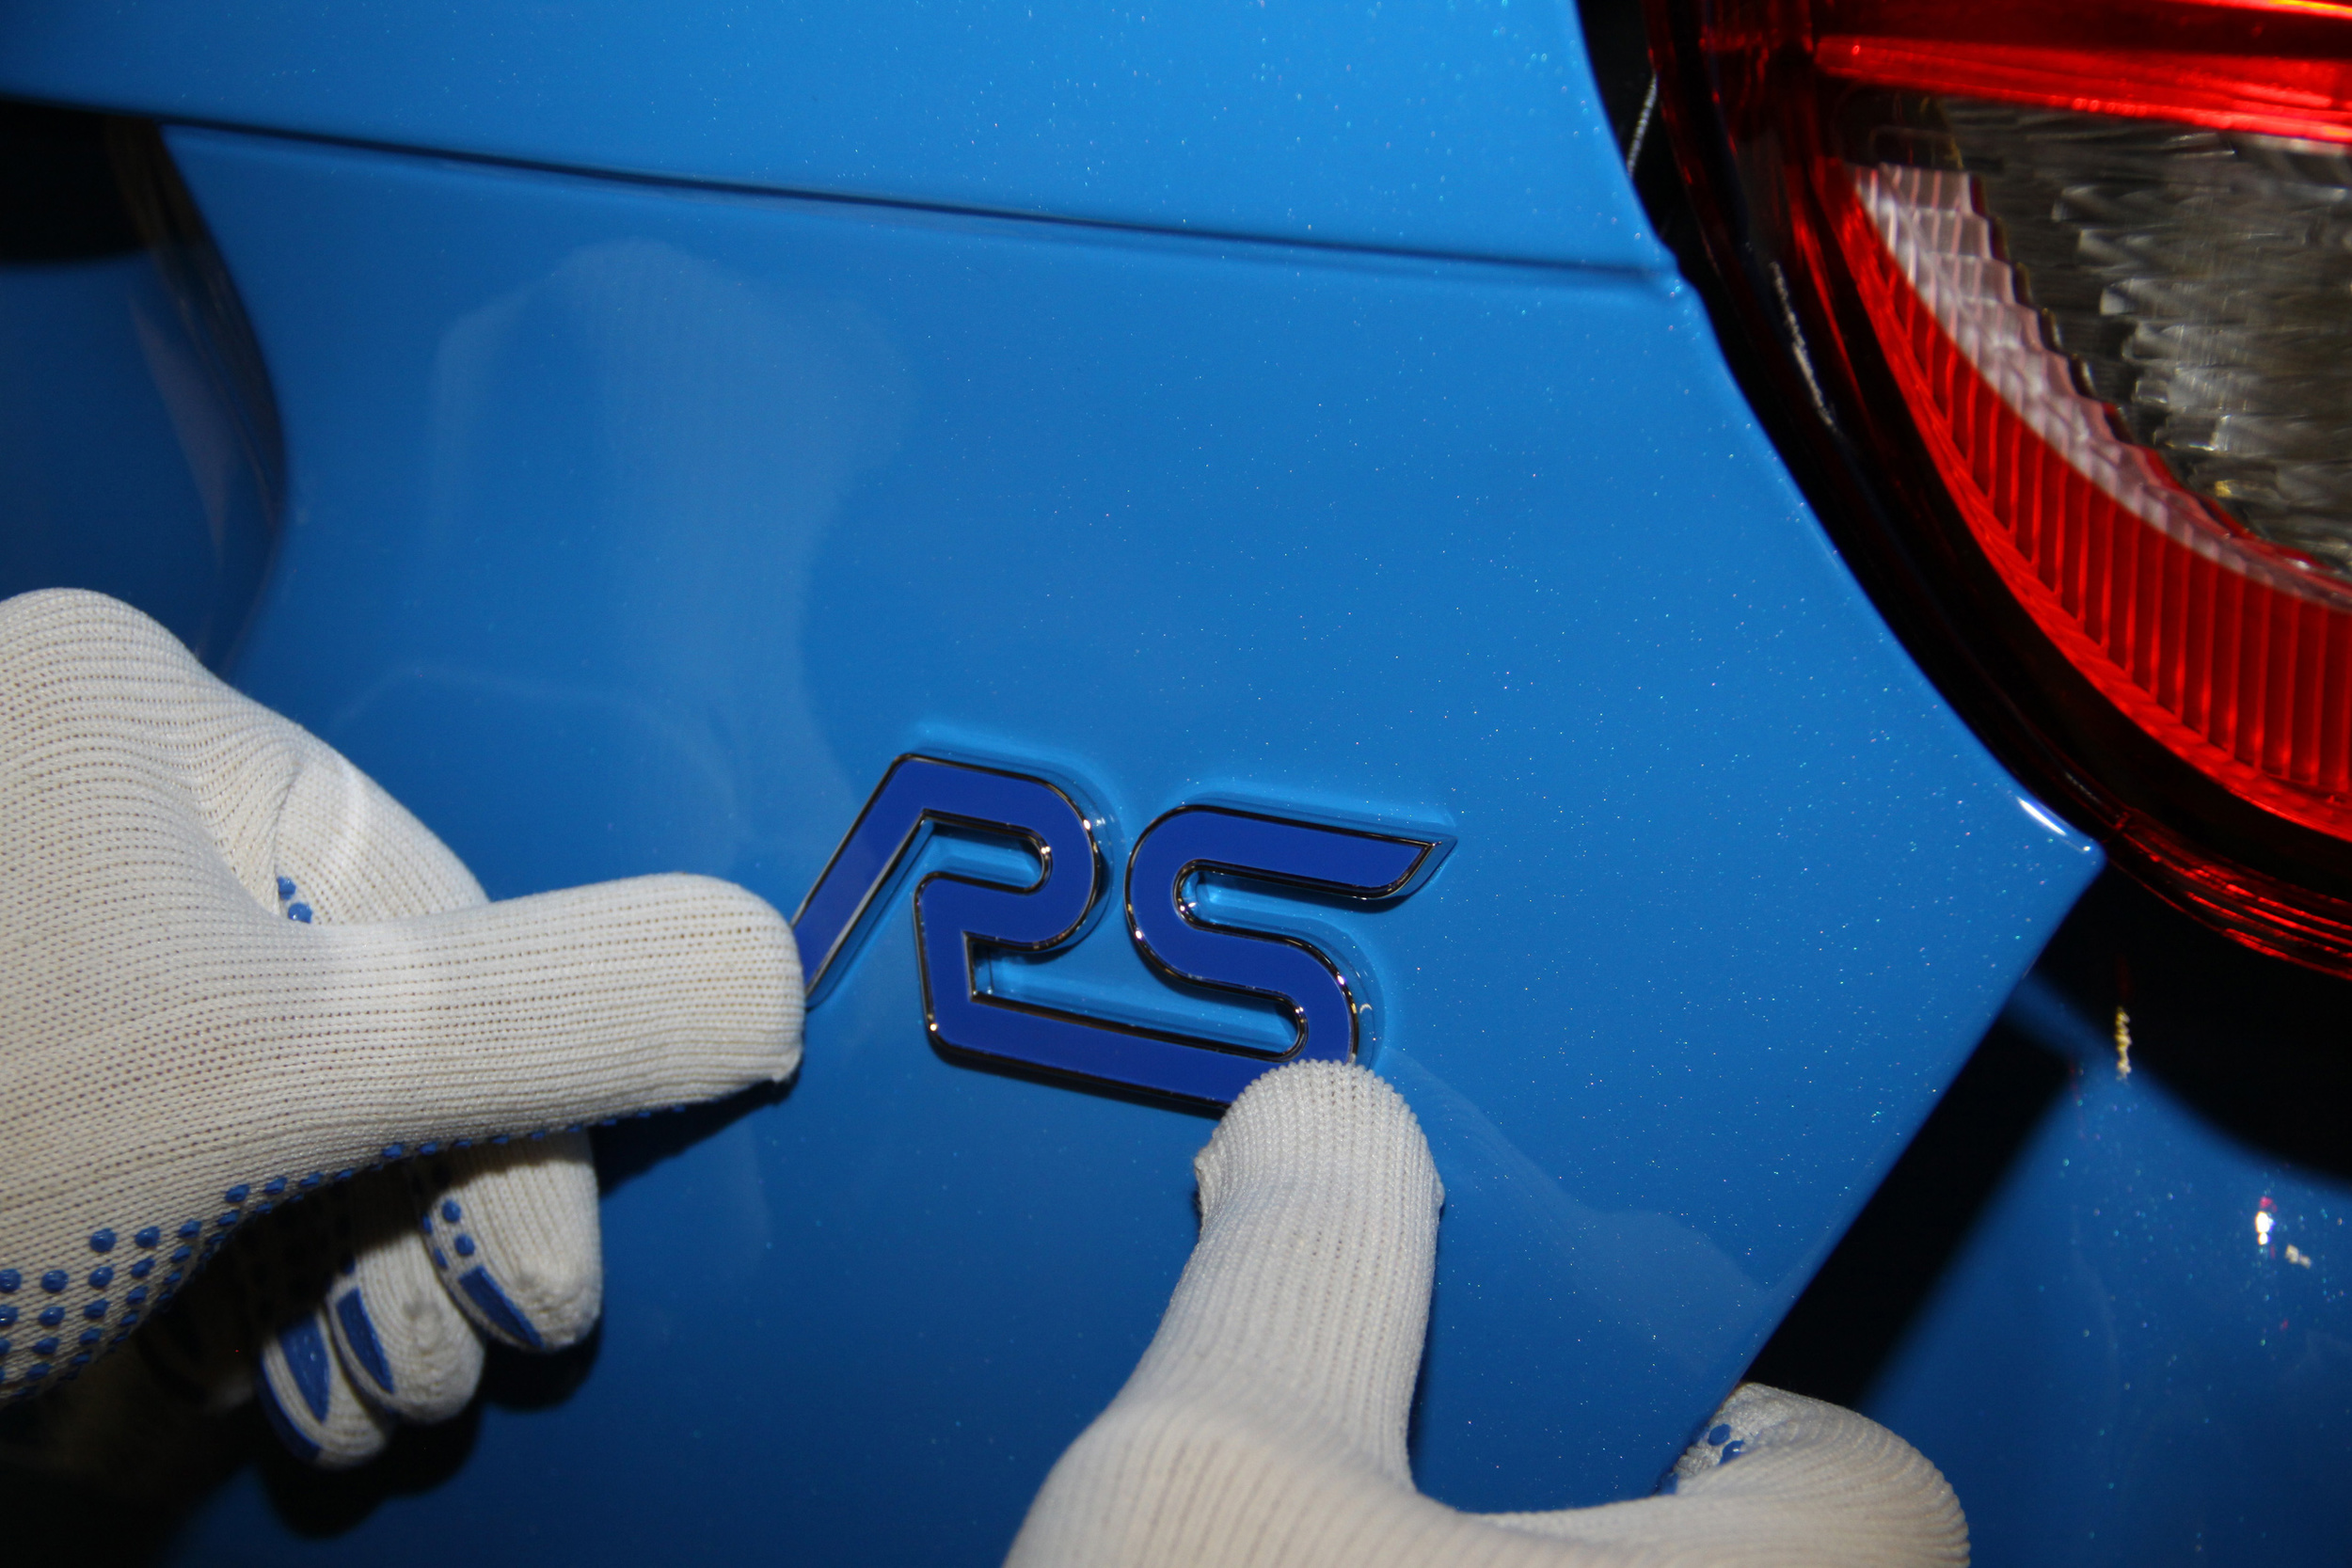 FocusRS_Production_04.jpg